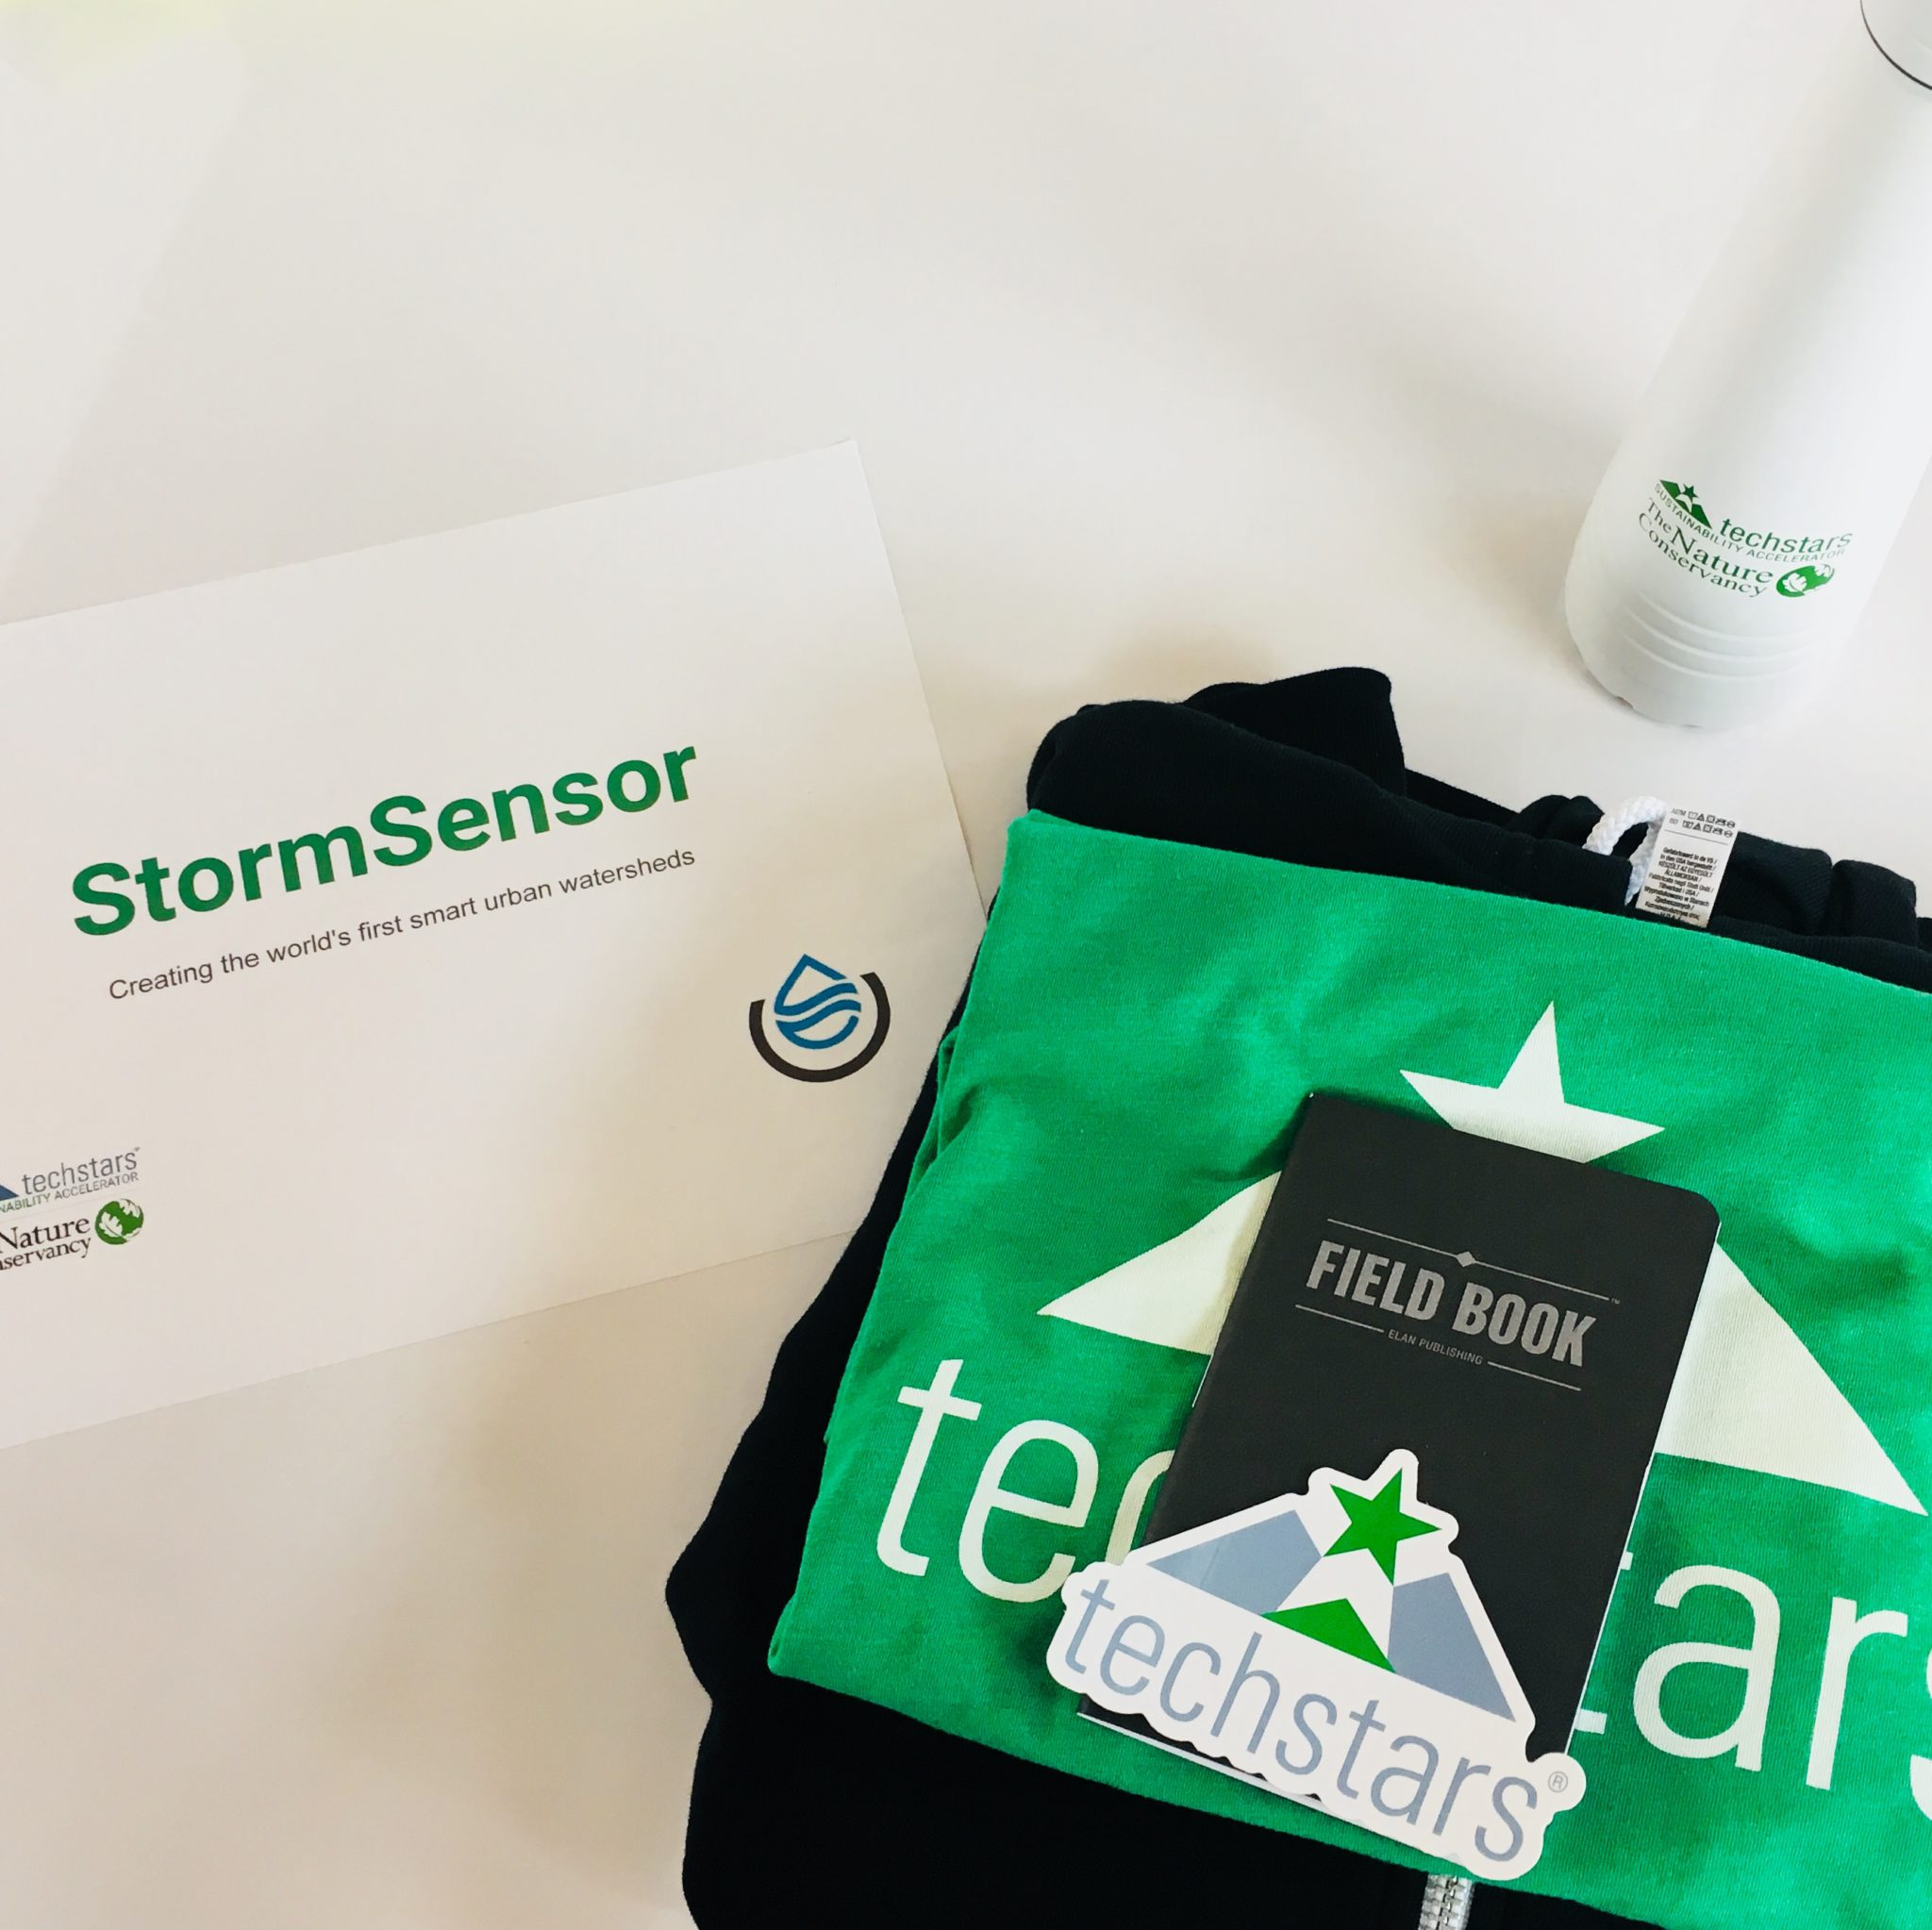 STORMSENSOR JOINS TECHSTARS SUSTAINABILITY